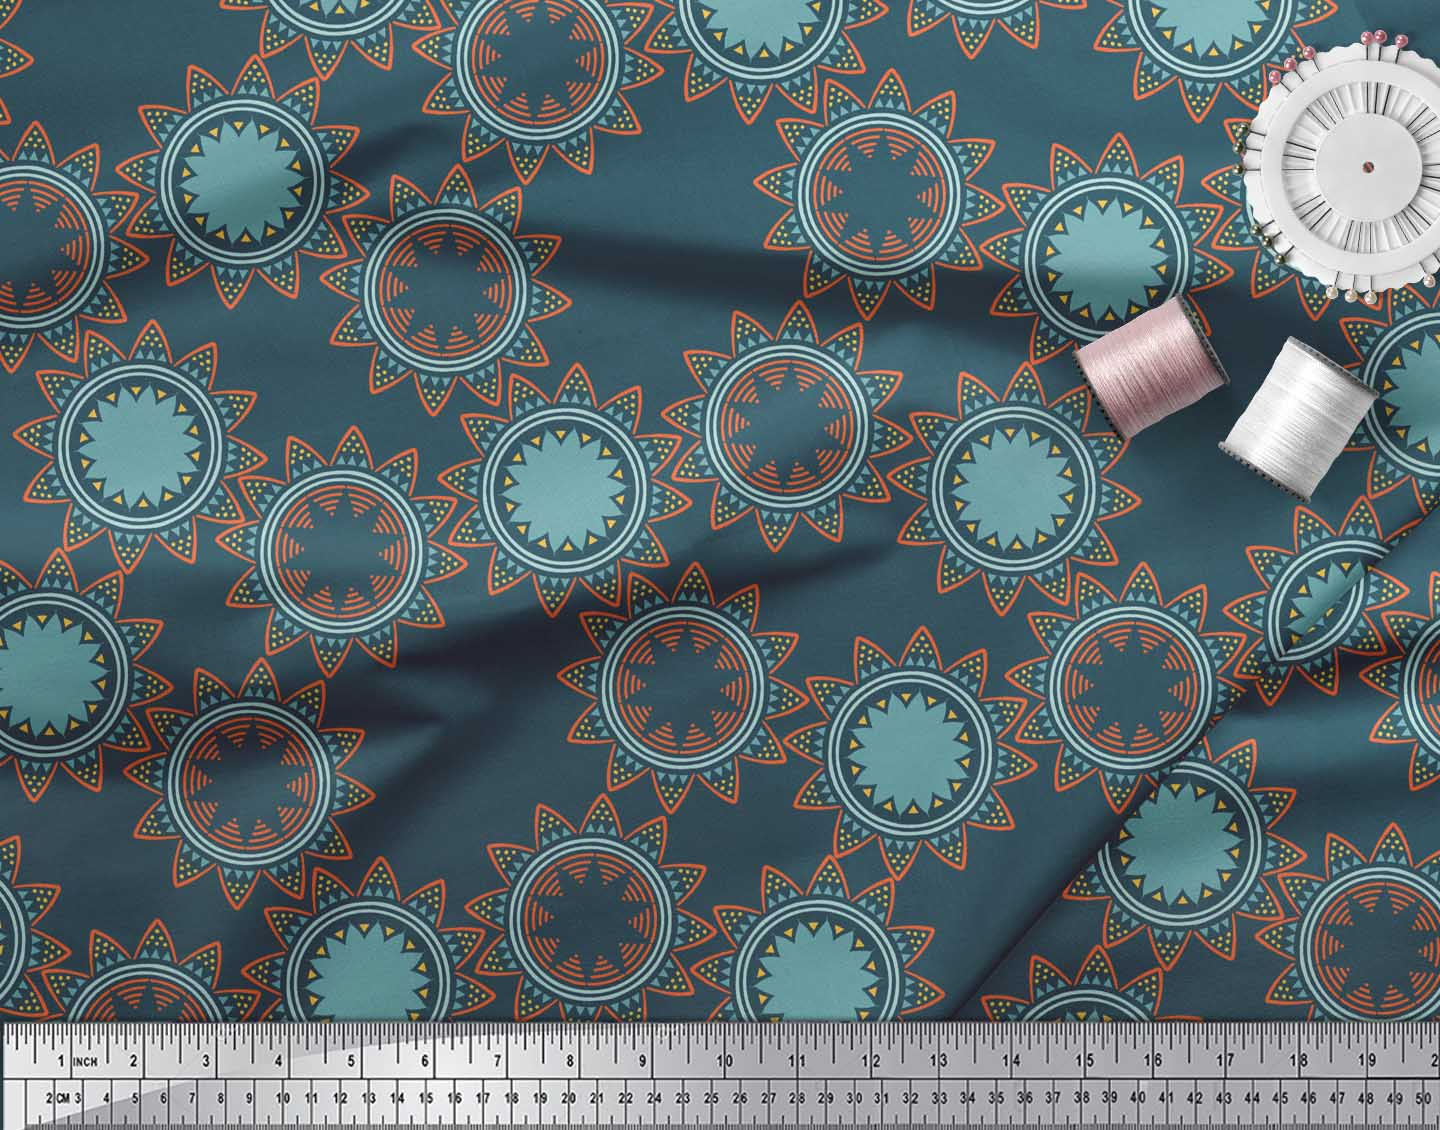 Soimoi-Blue-Cotton-Poplin-Fabric-Sun-Mandala-Print-Fabric-by-metre-Geq thumbnail 4